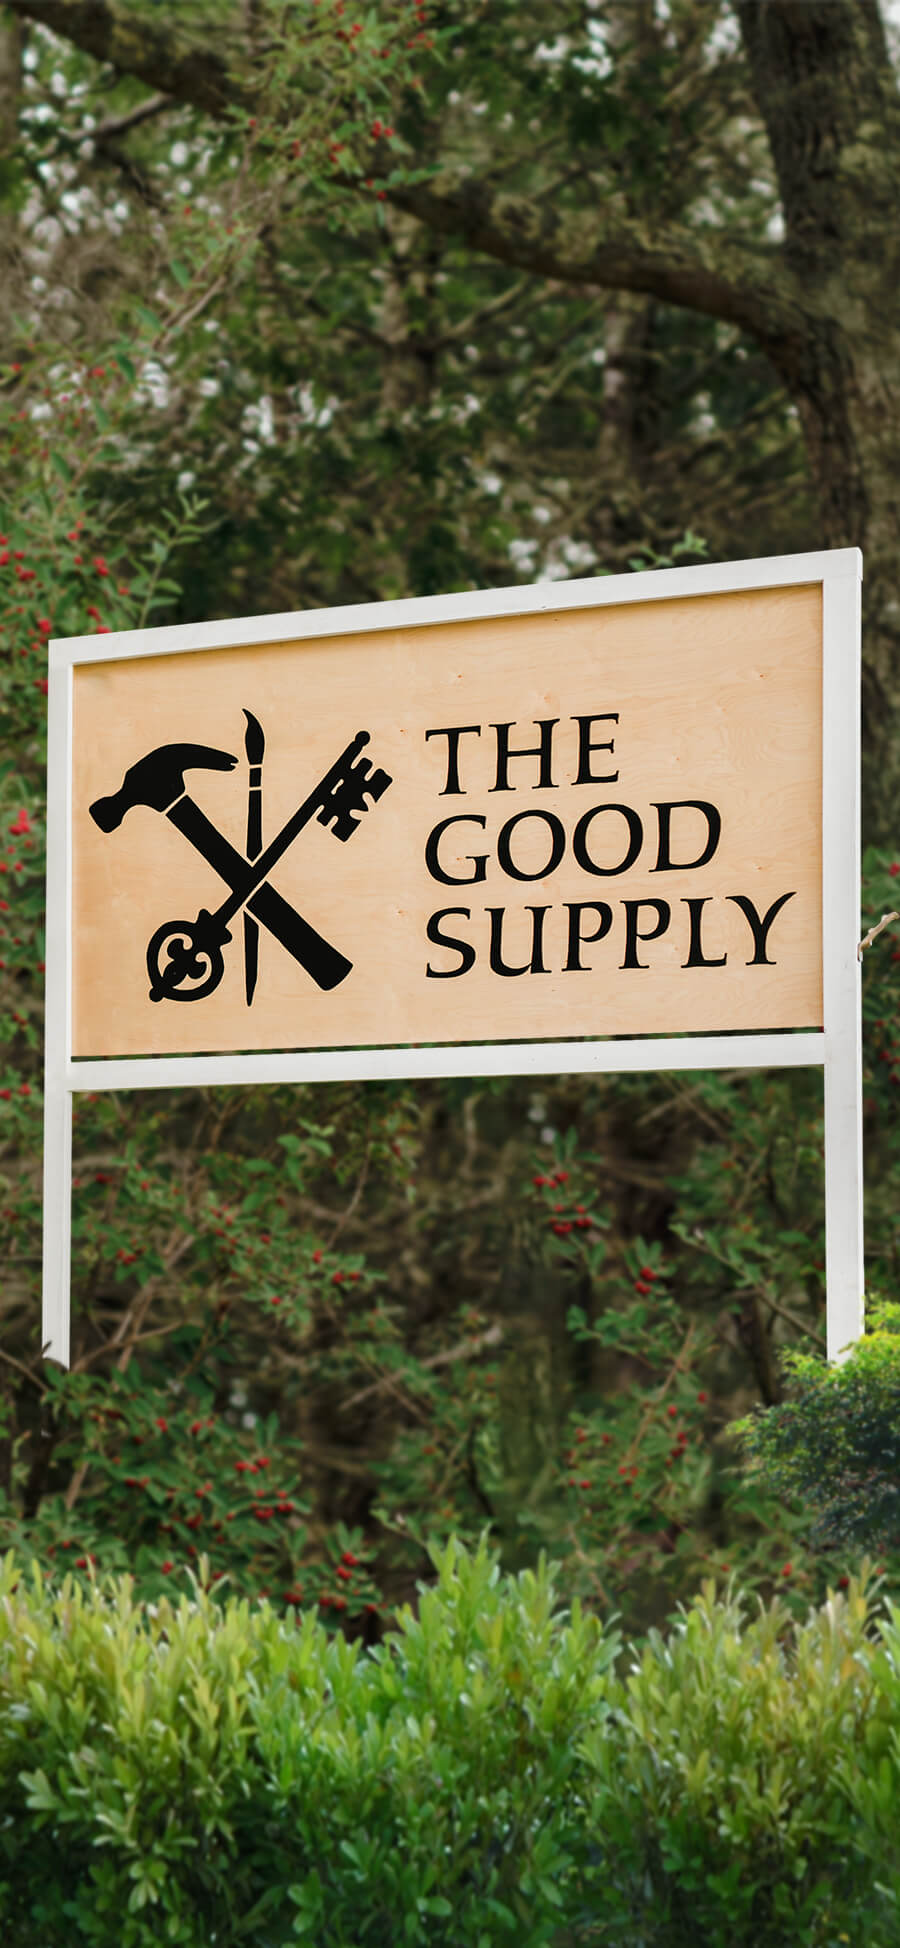 The Good Supply